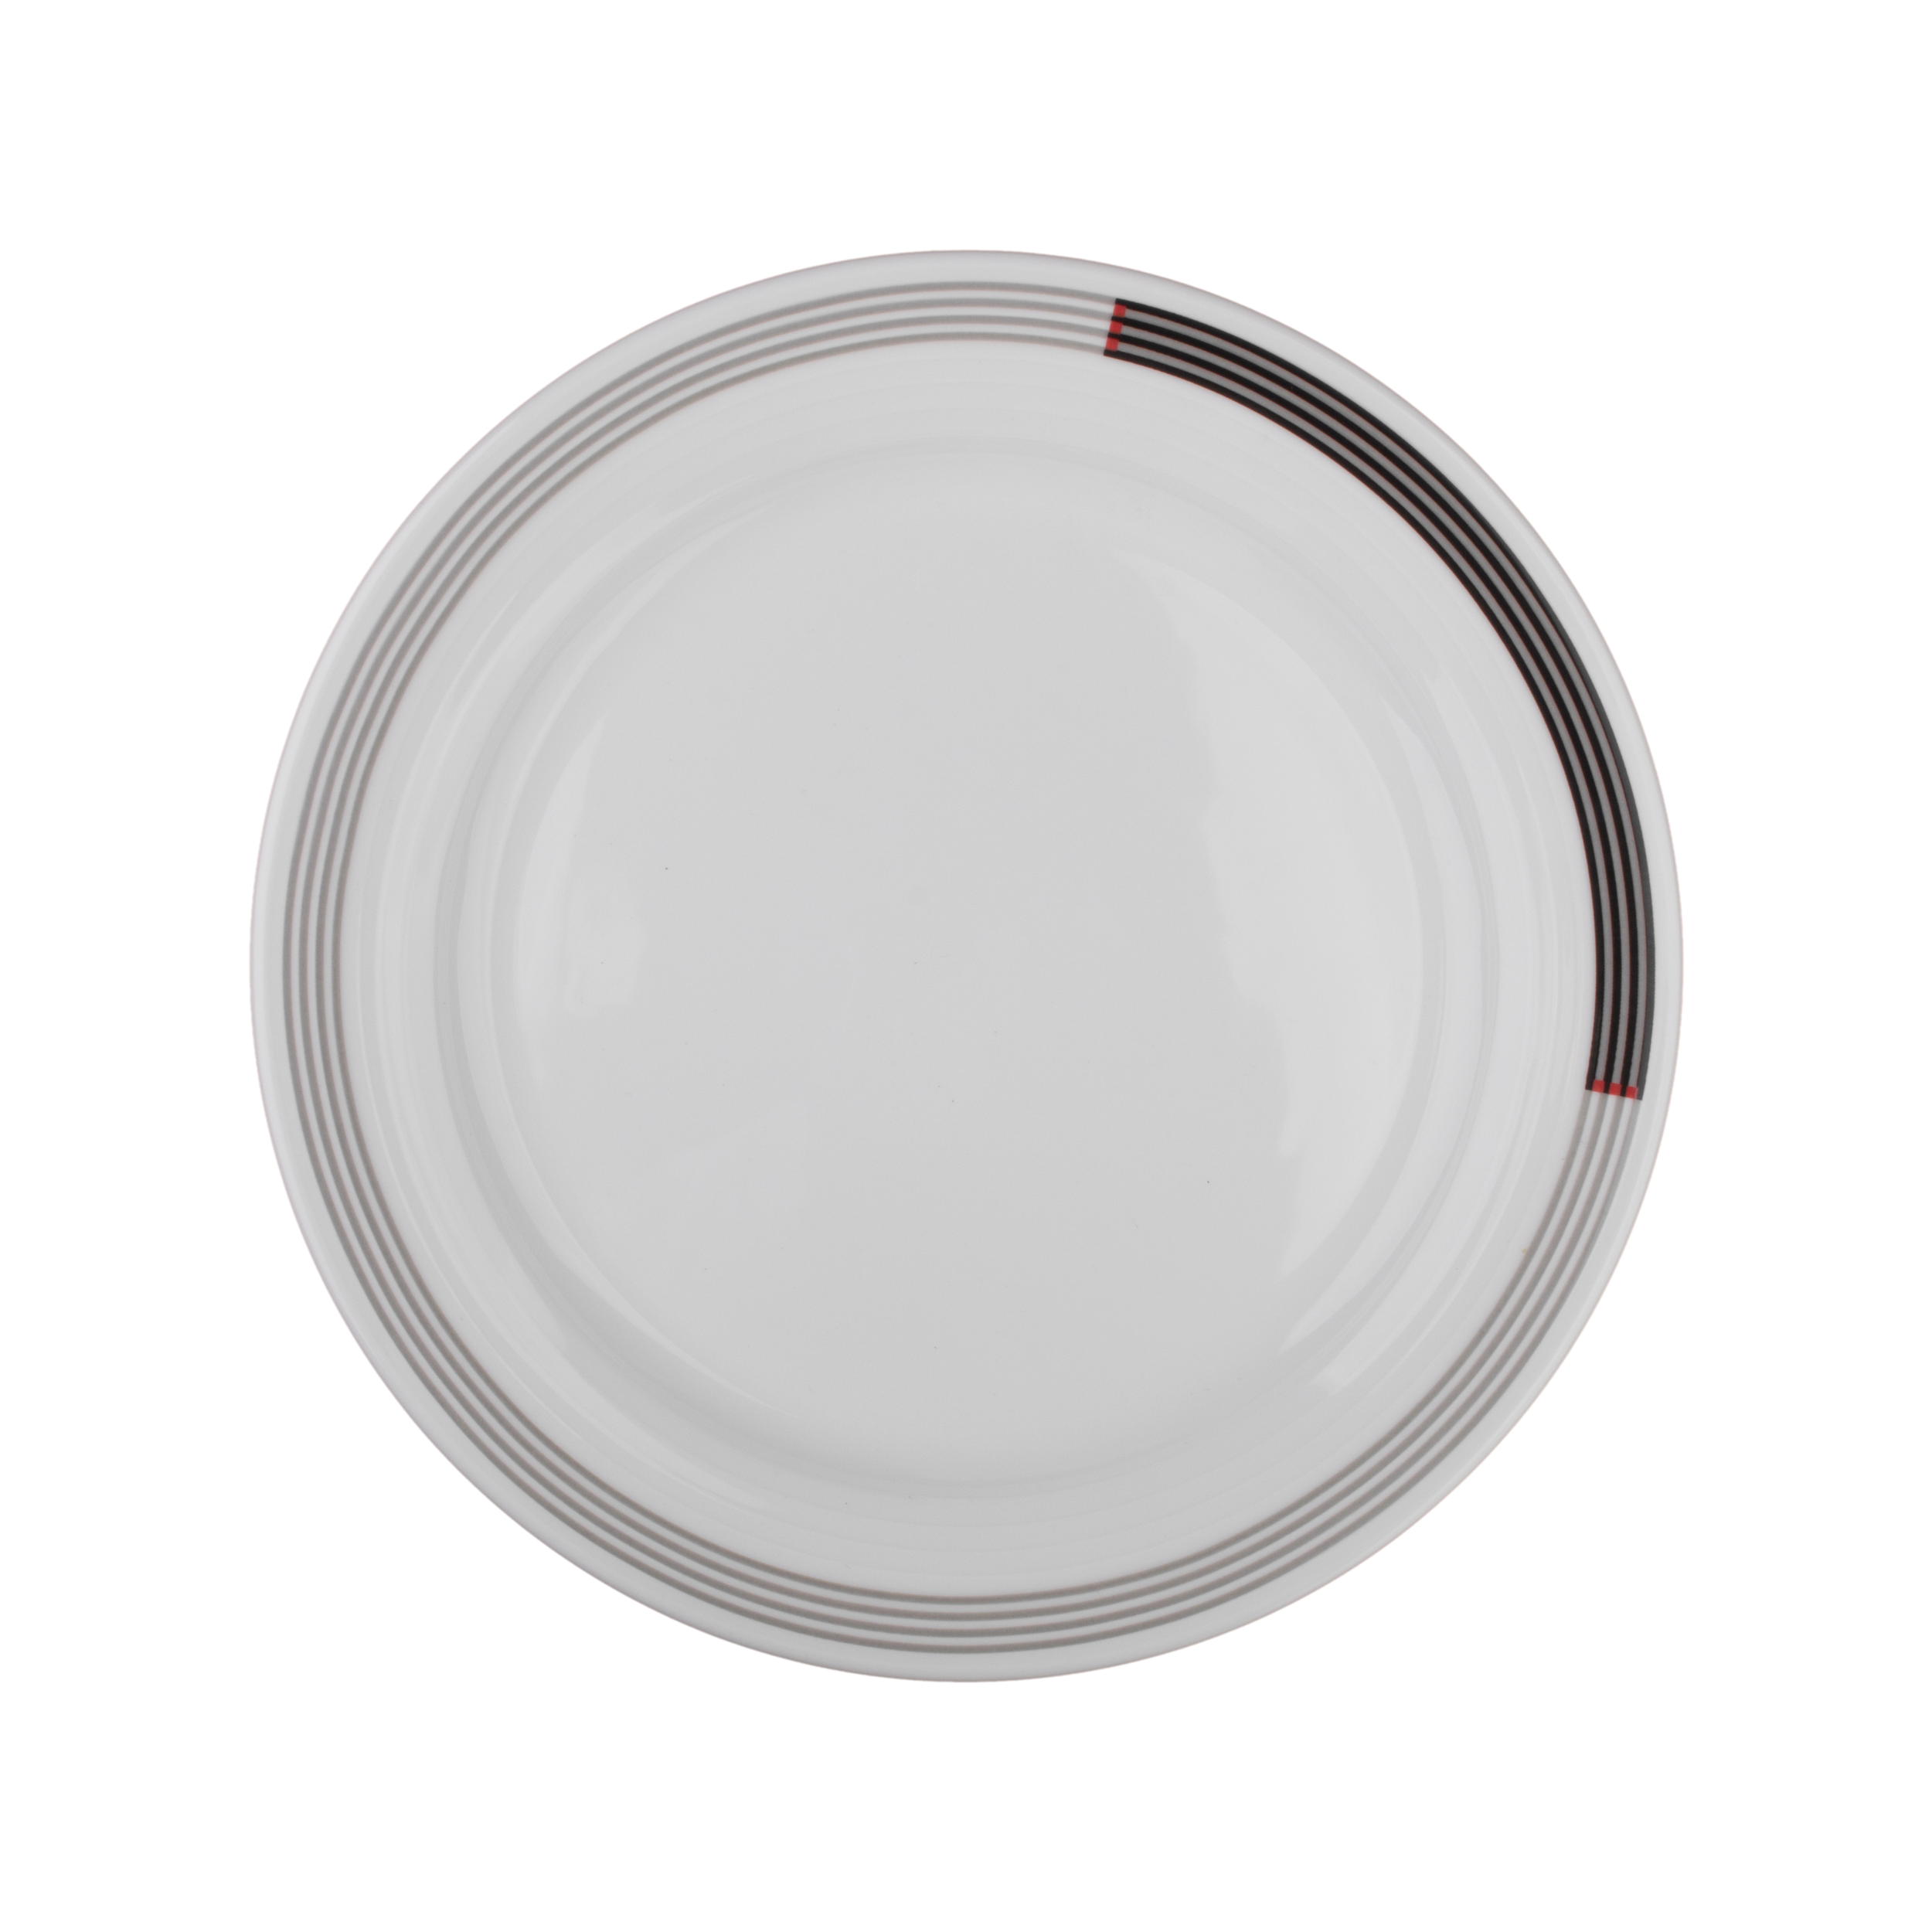 /uploads/UserFiles/Images/Products%2Fserve-plate%2Fzarin%2Fvegas-zarin.png